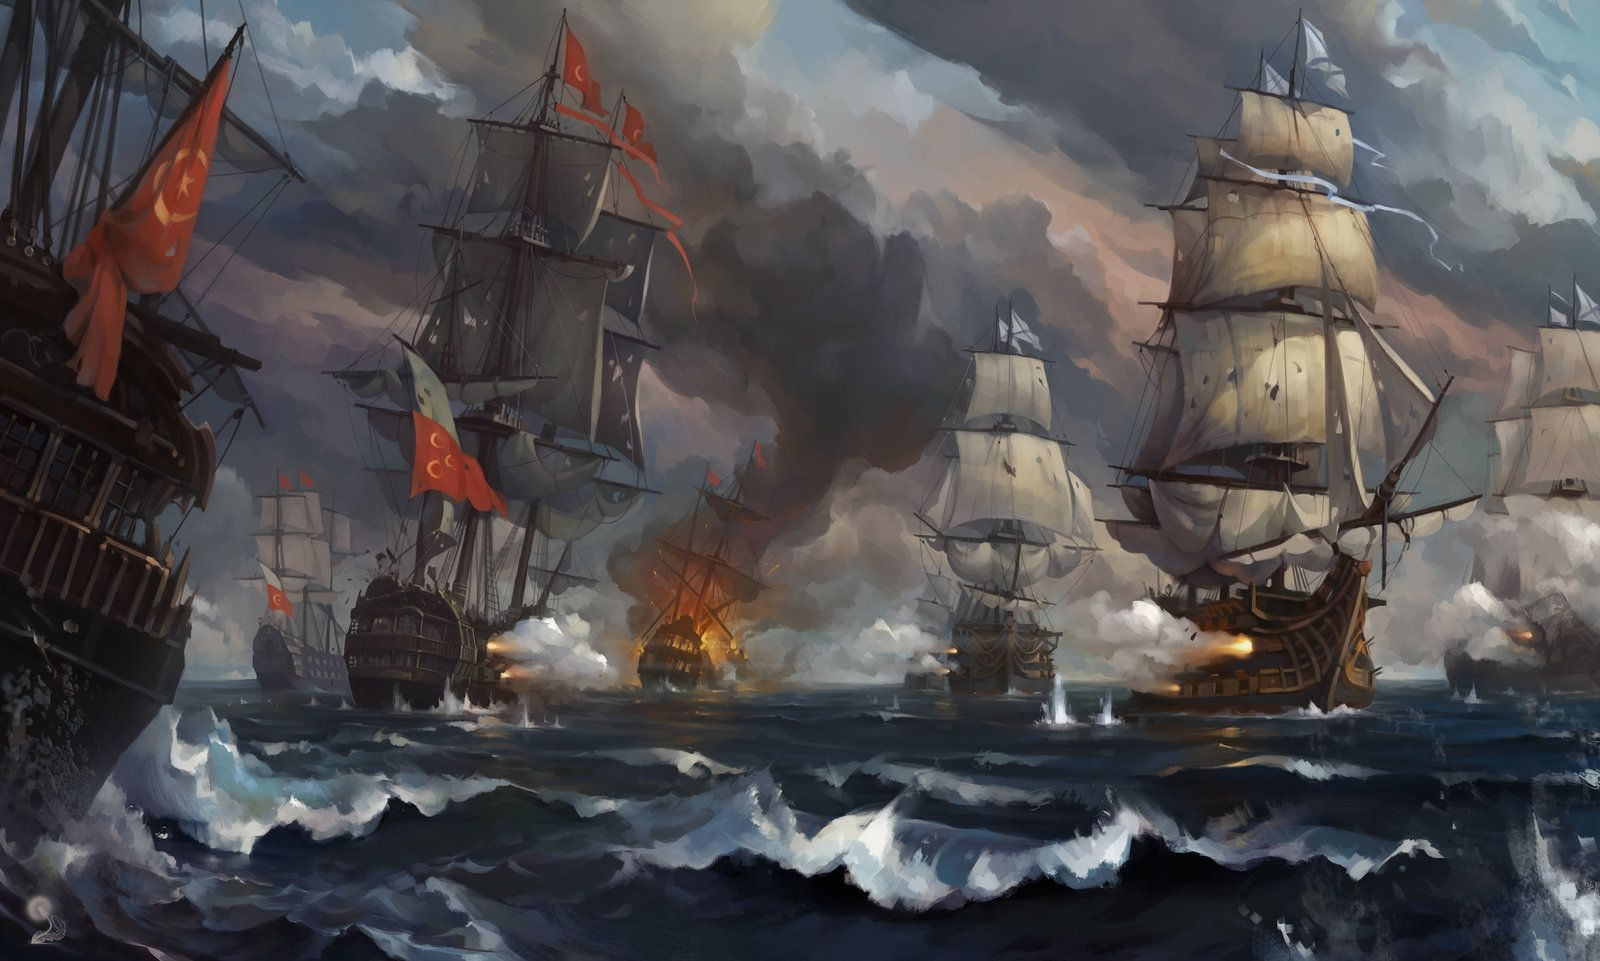 The Battle of Land and Sea